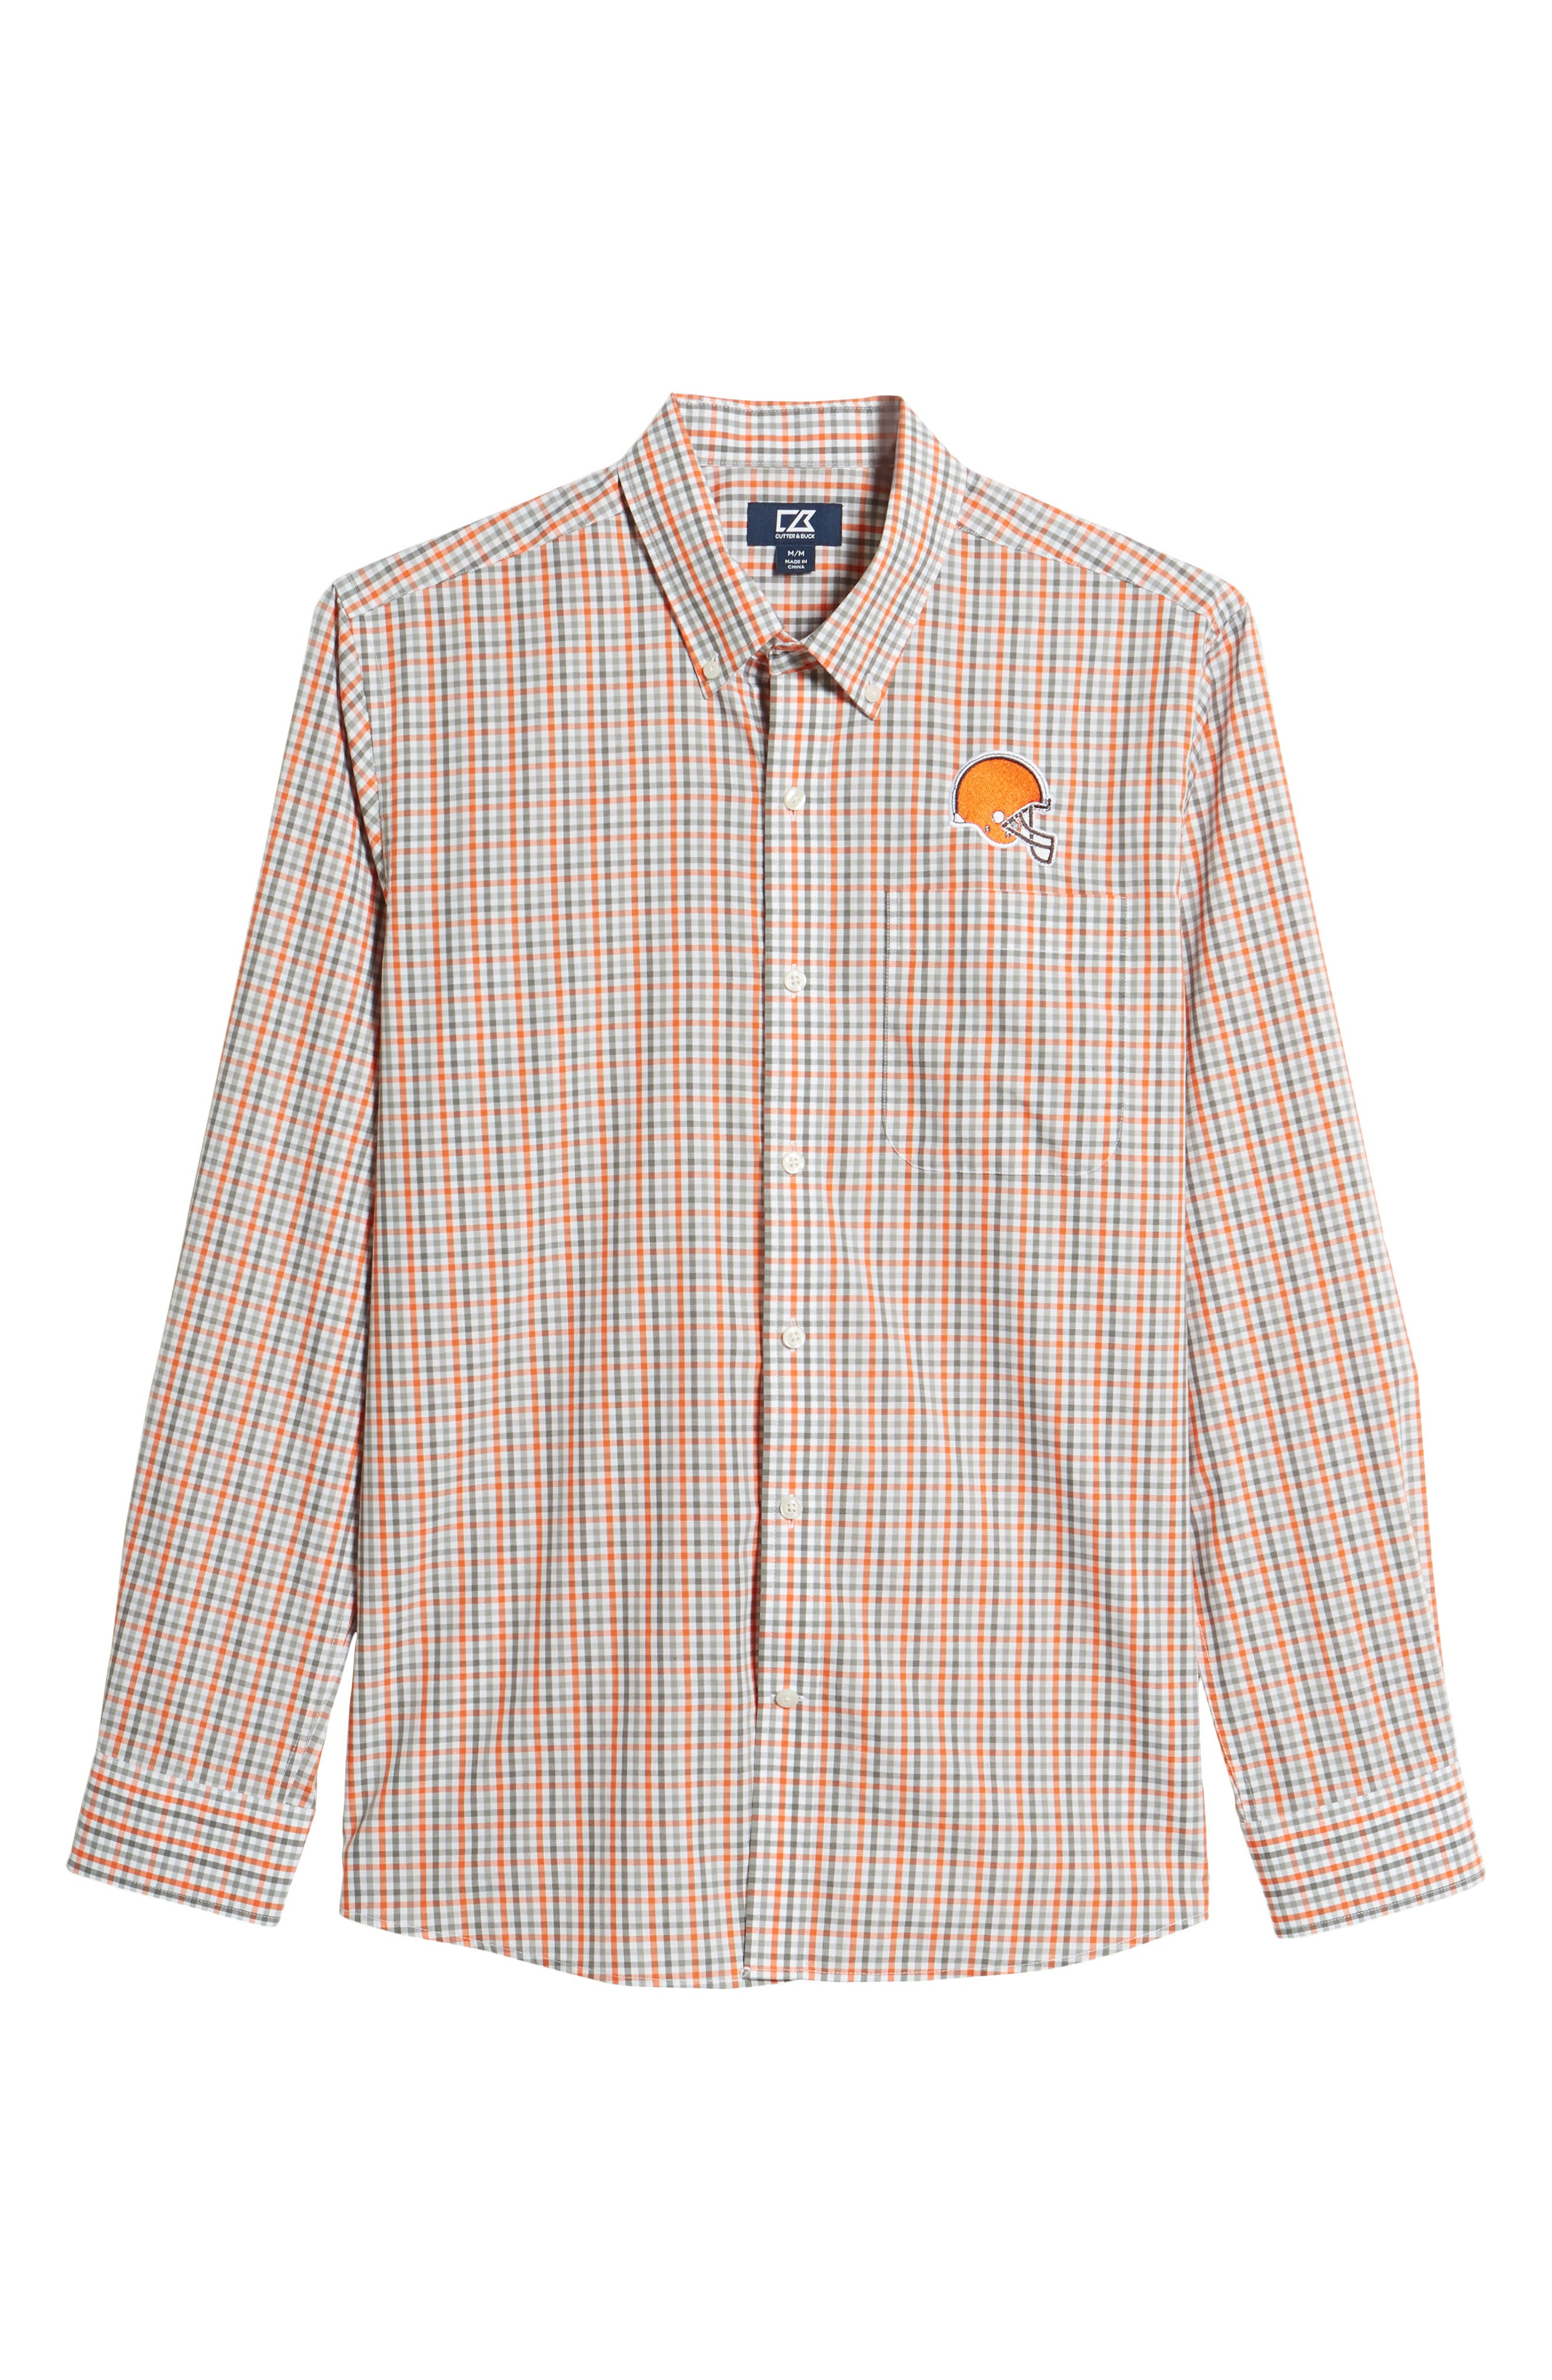 Cleveland Browns - Gilman Regular Fit Plaid Sport Shirt,                             Alternate thumbnail 6, color,                             COLLEGE ORANGE